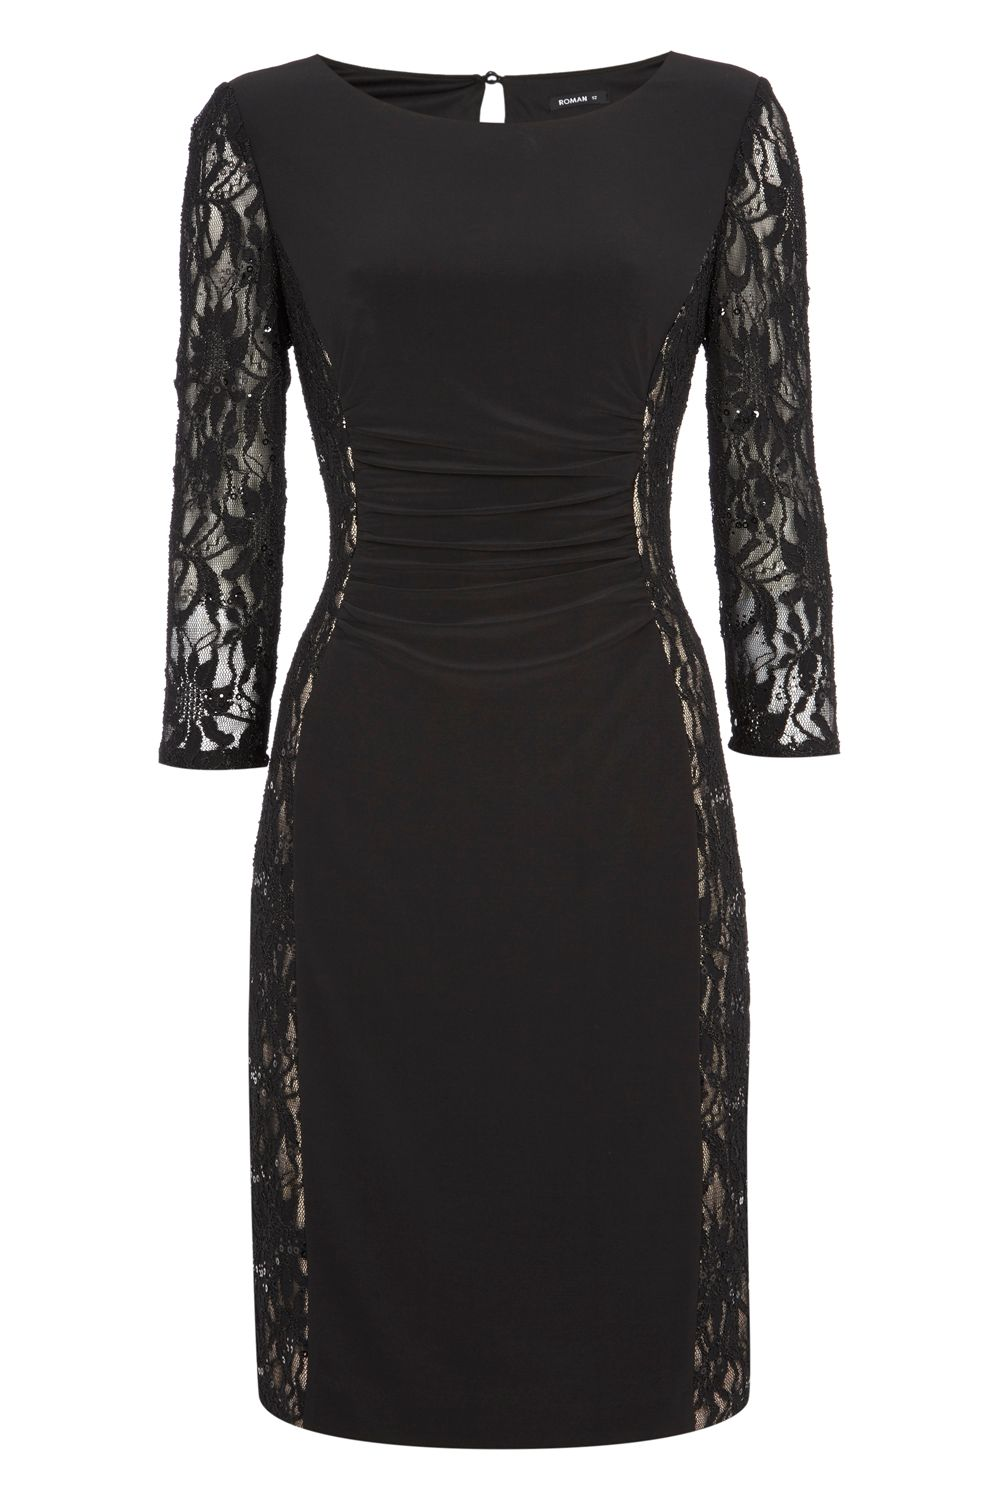 Roman Originals Jersey and Lace Contrast Dress, Black